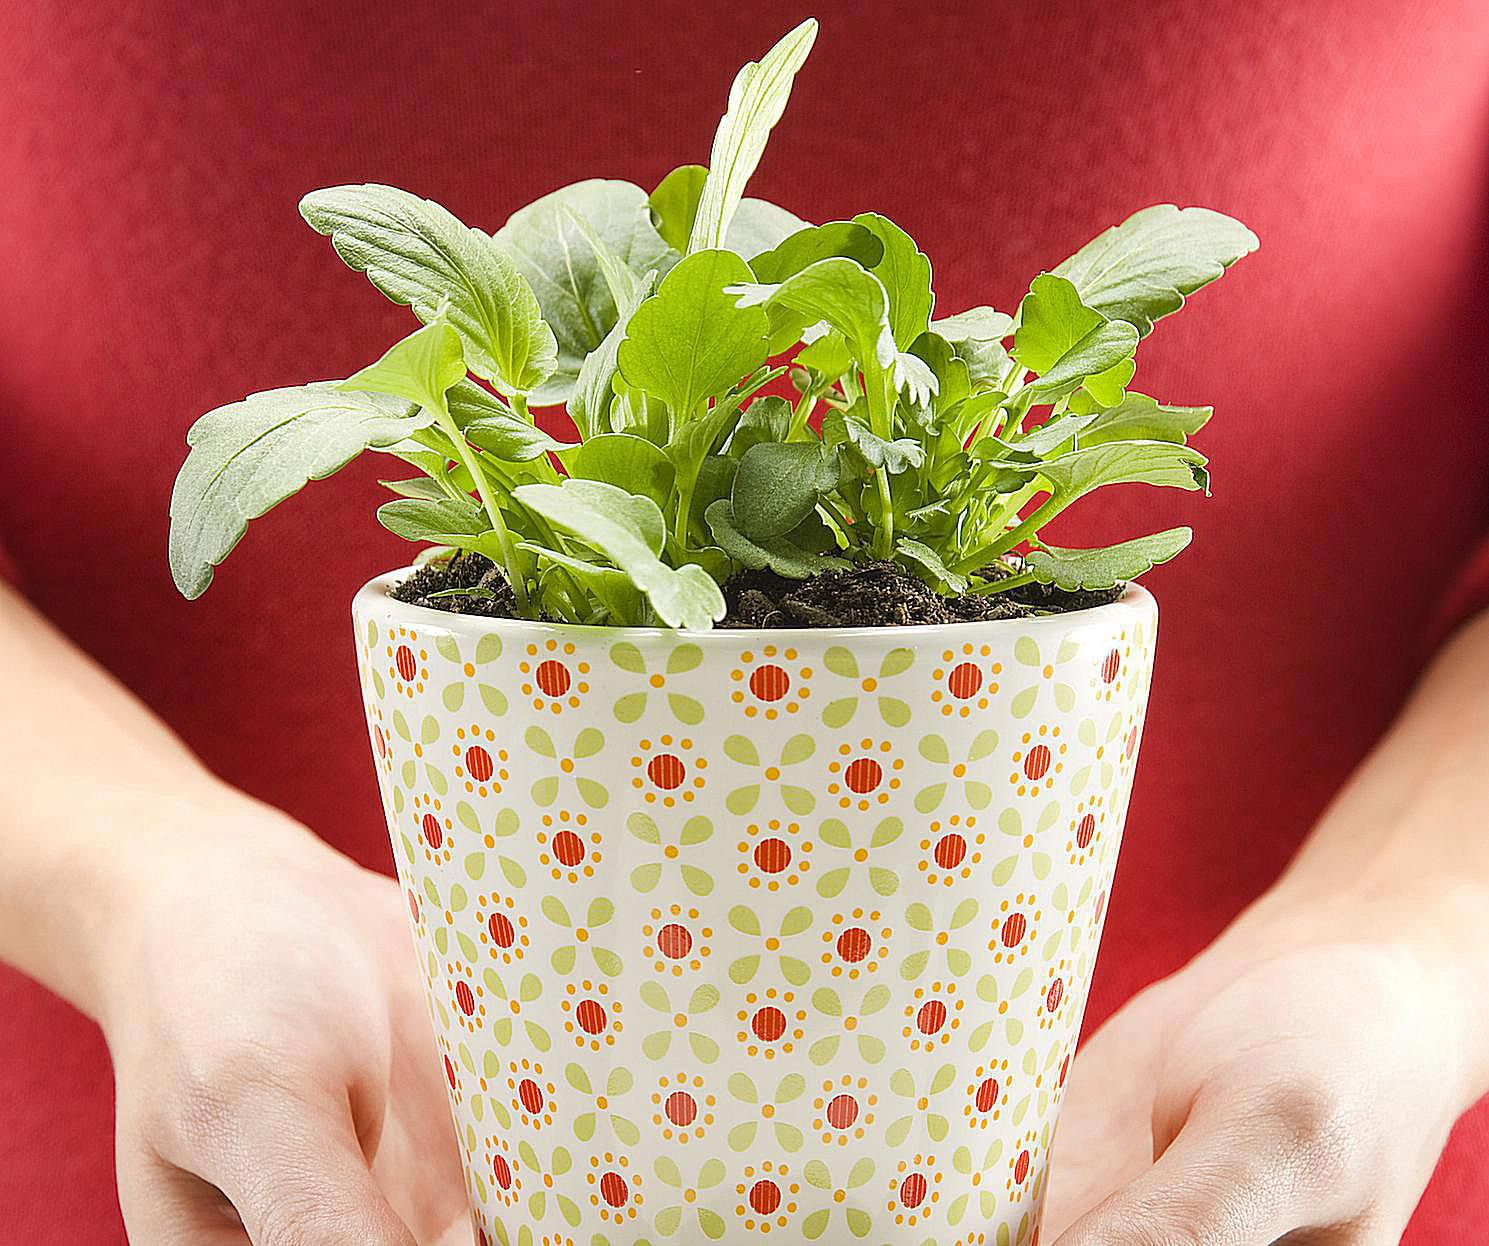 Feng Shui Use of Plants in the Bedroom  Just Say No. What Is the Feng Shui of Plants in the Bedroom